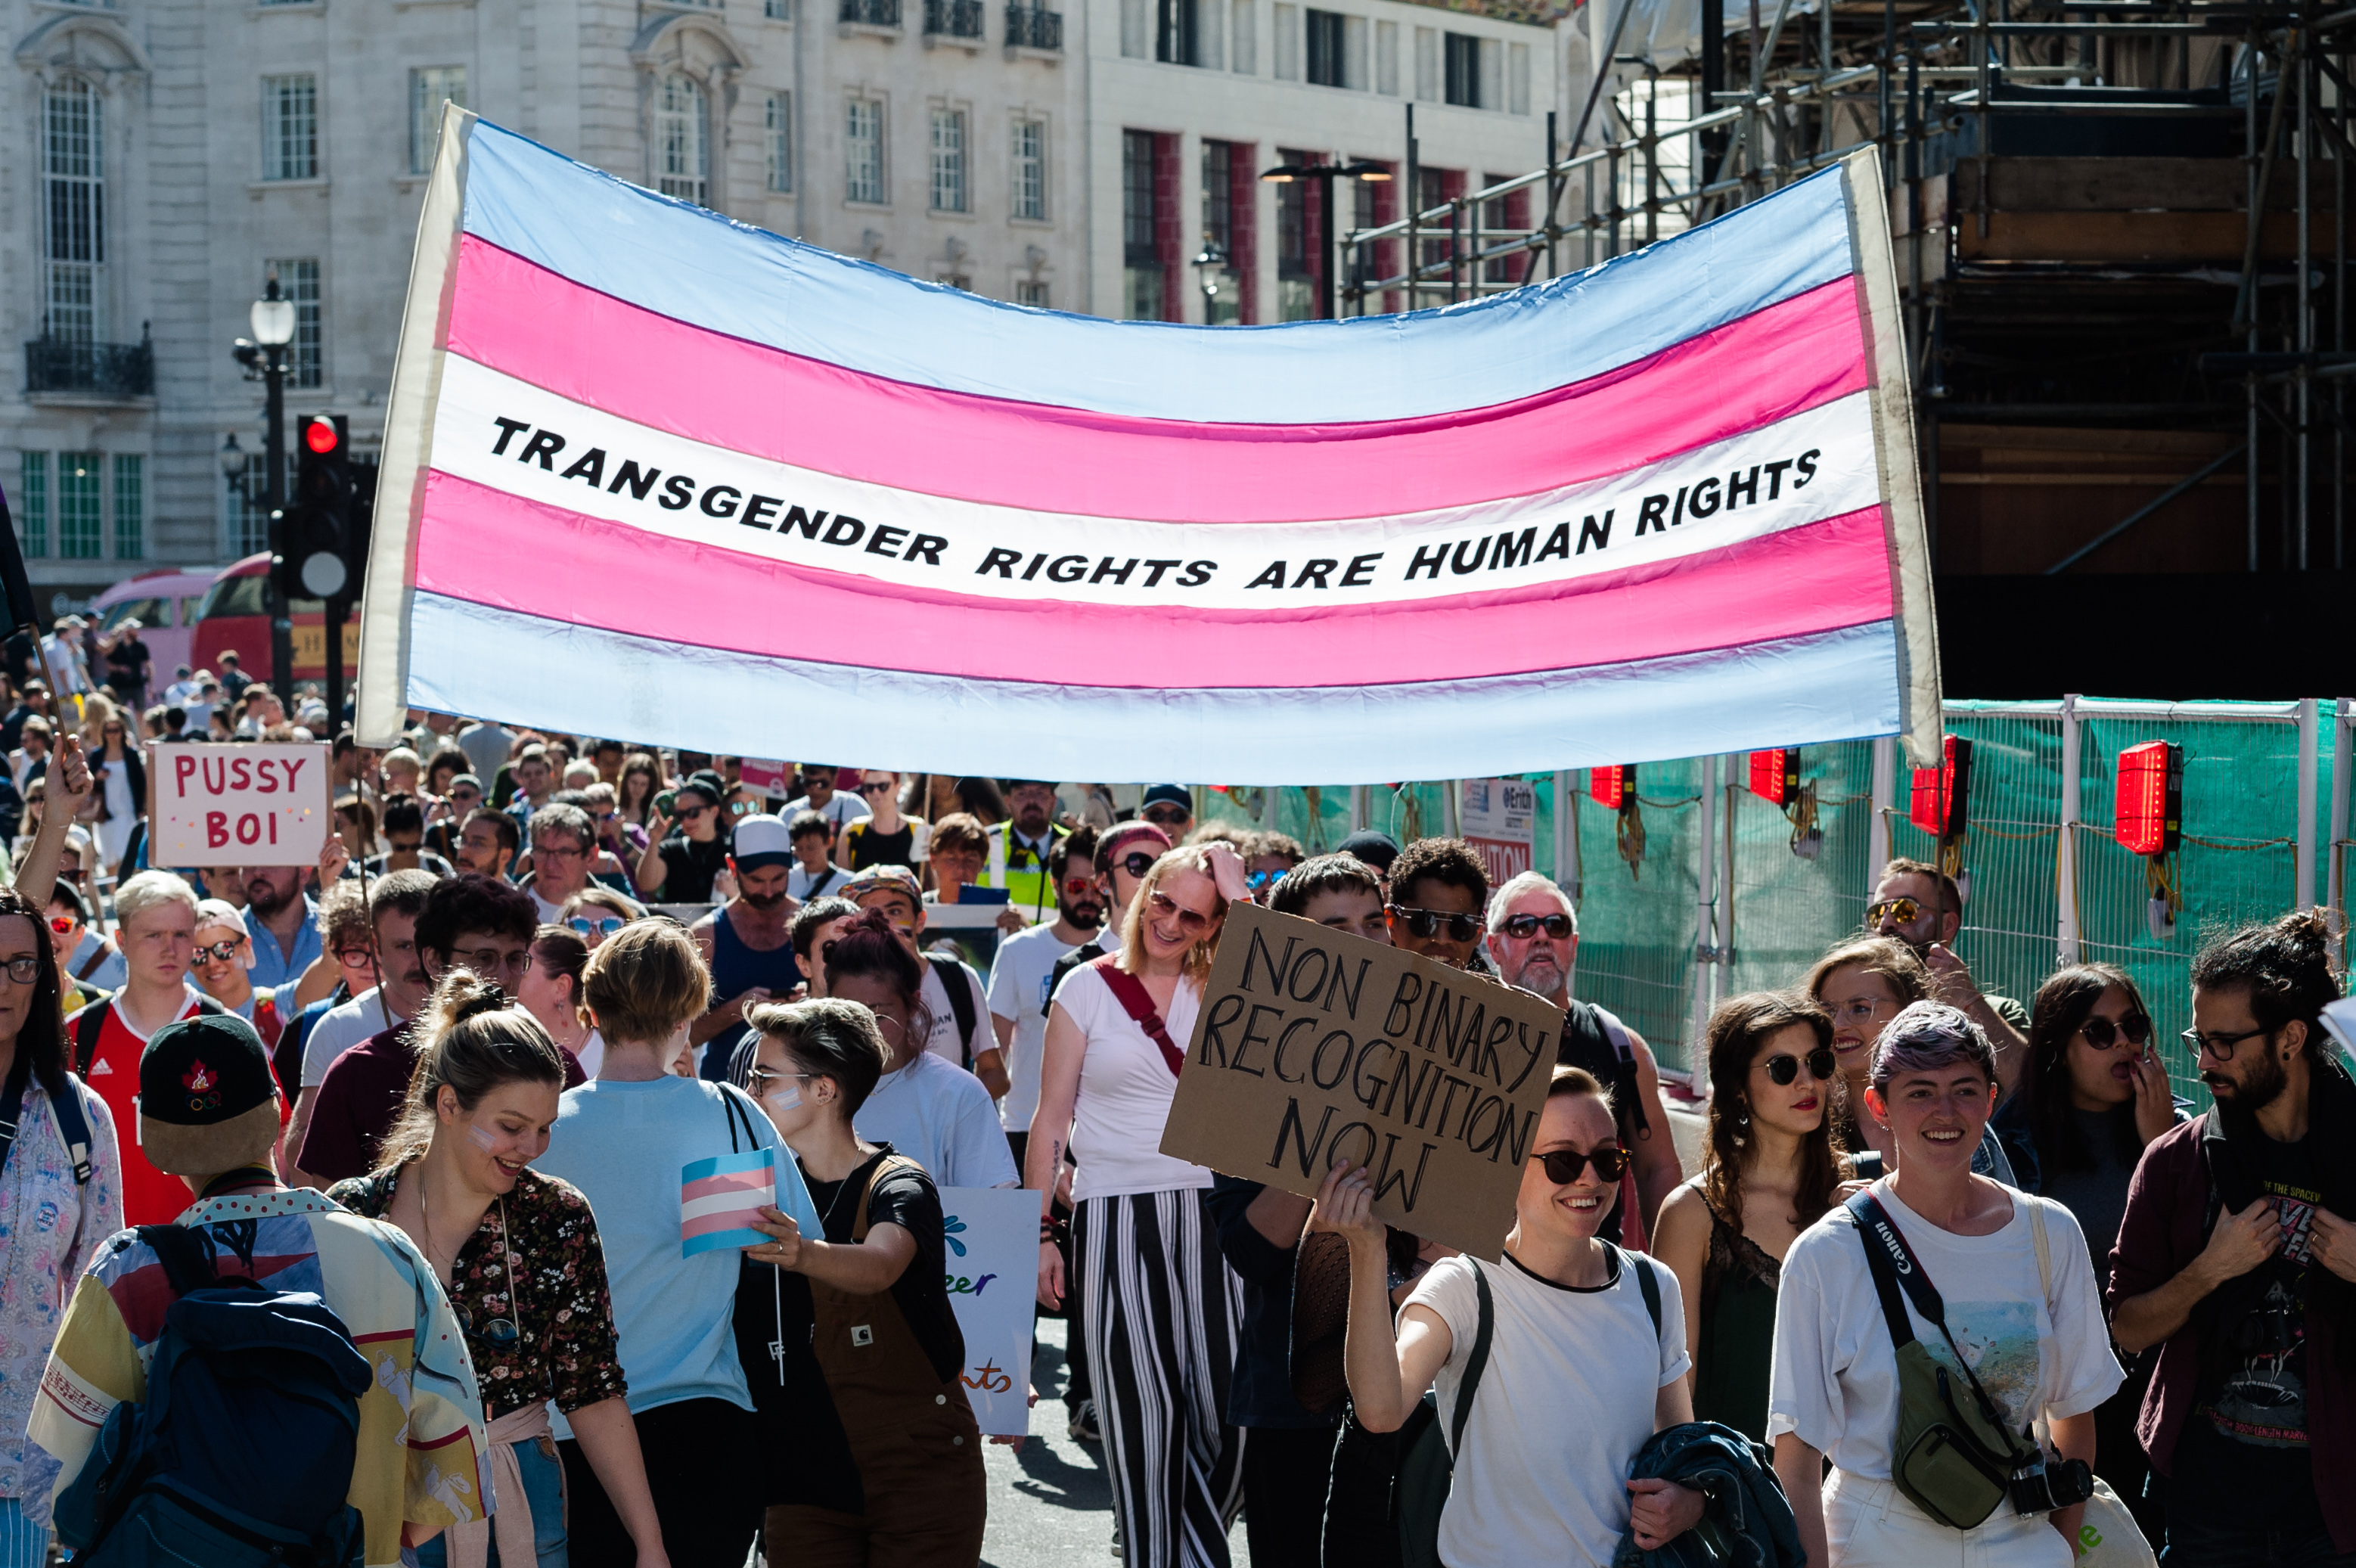 trans-rights-2020-world-health-organization-gender-identity-disorder